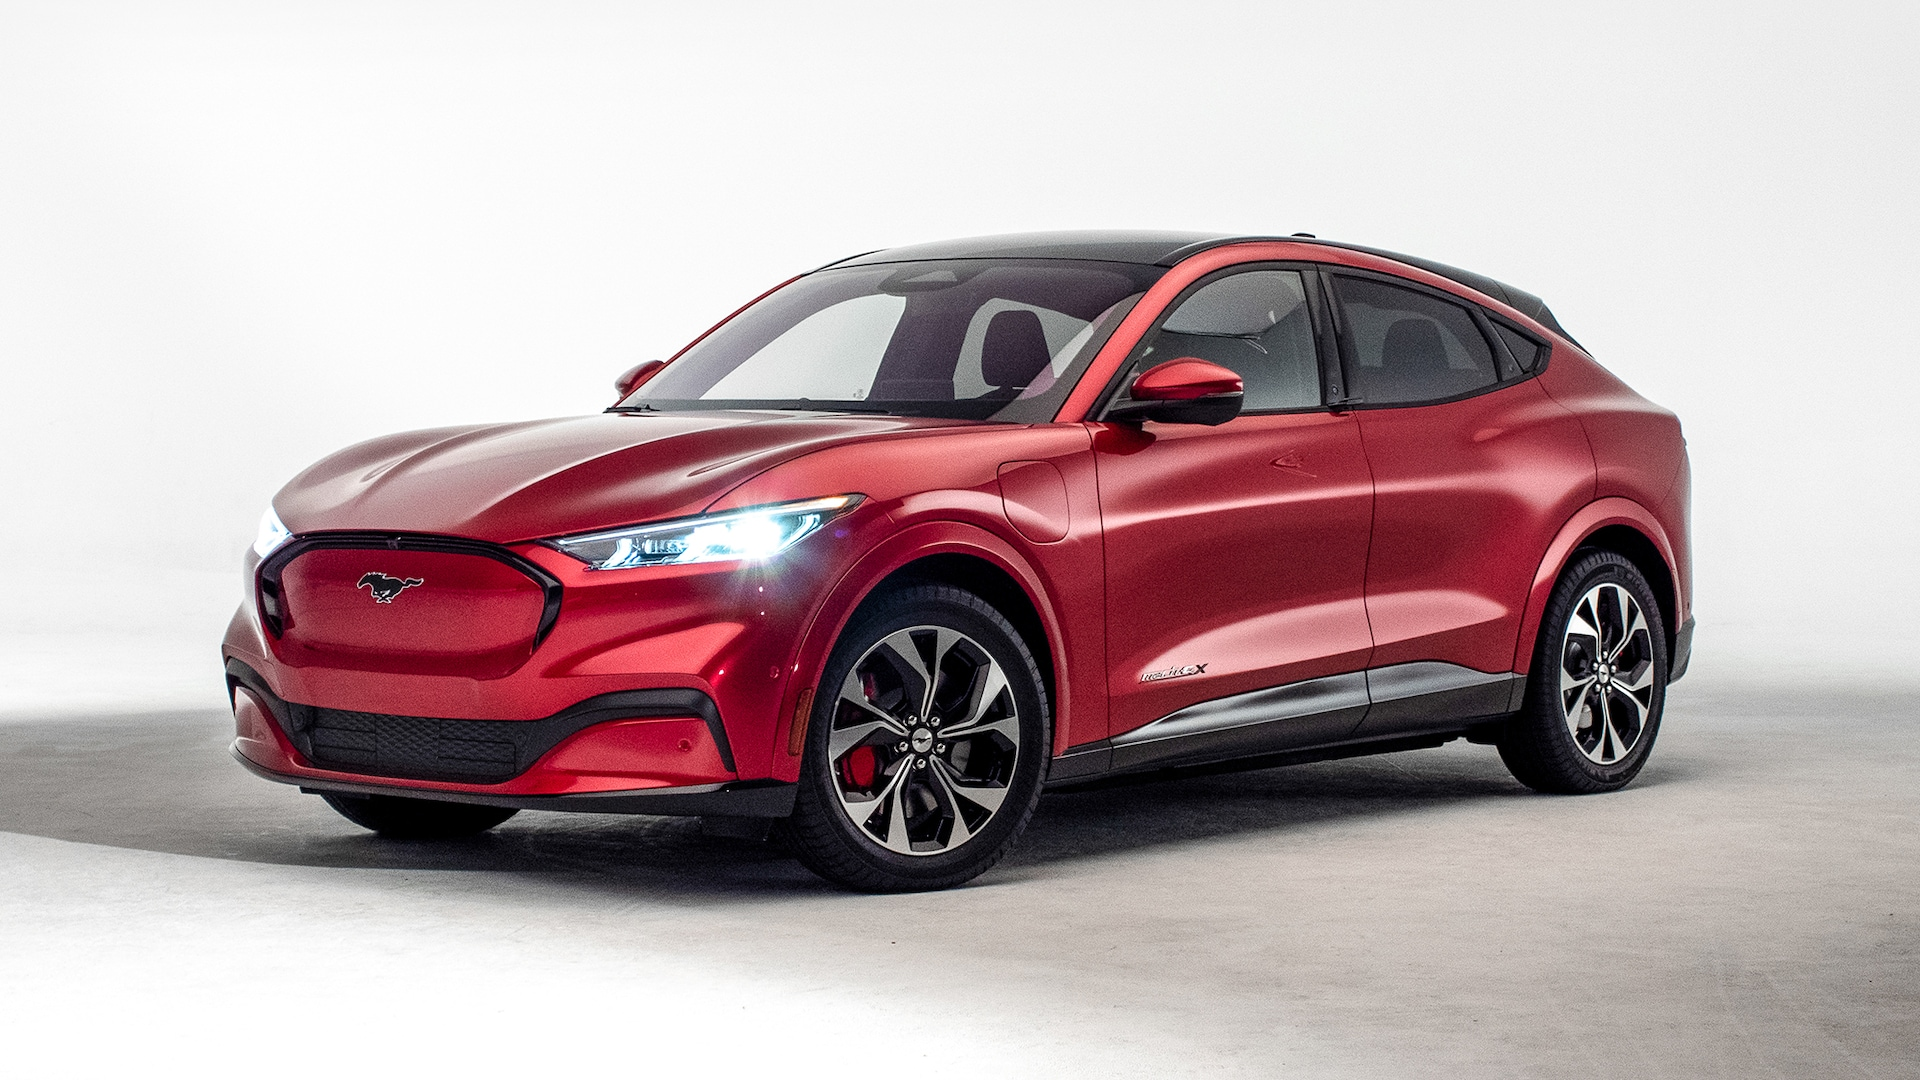 2021 ford mach e will combine electric power with mustang